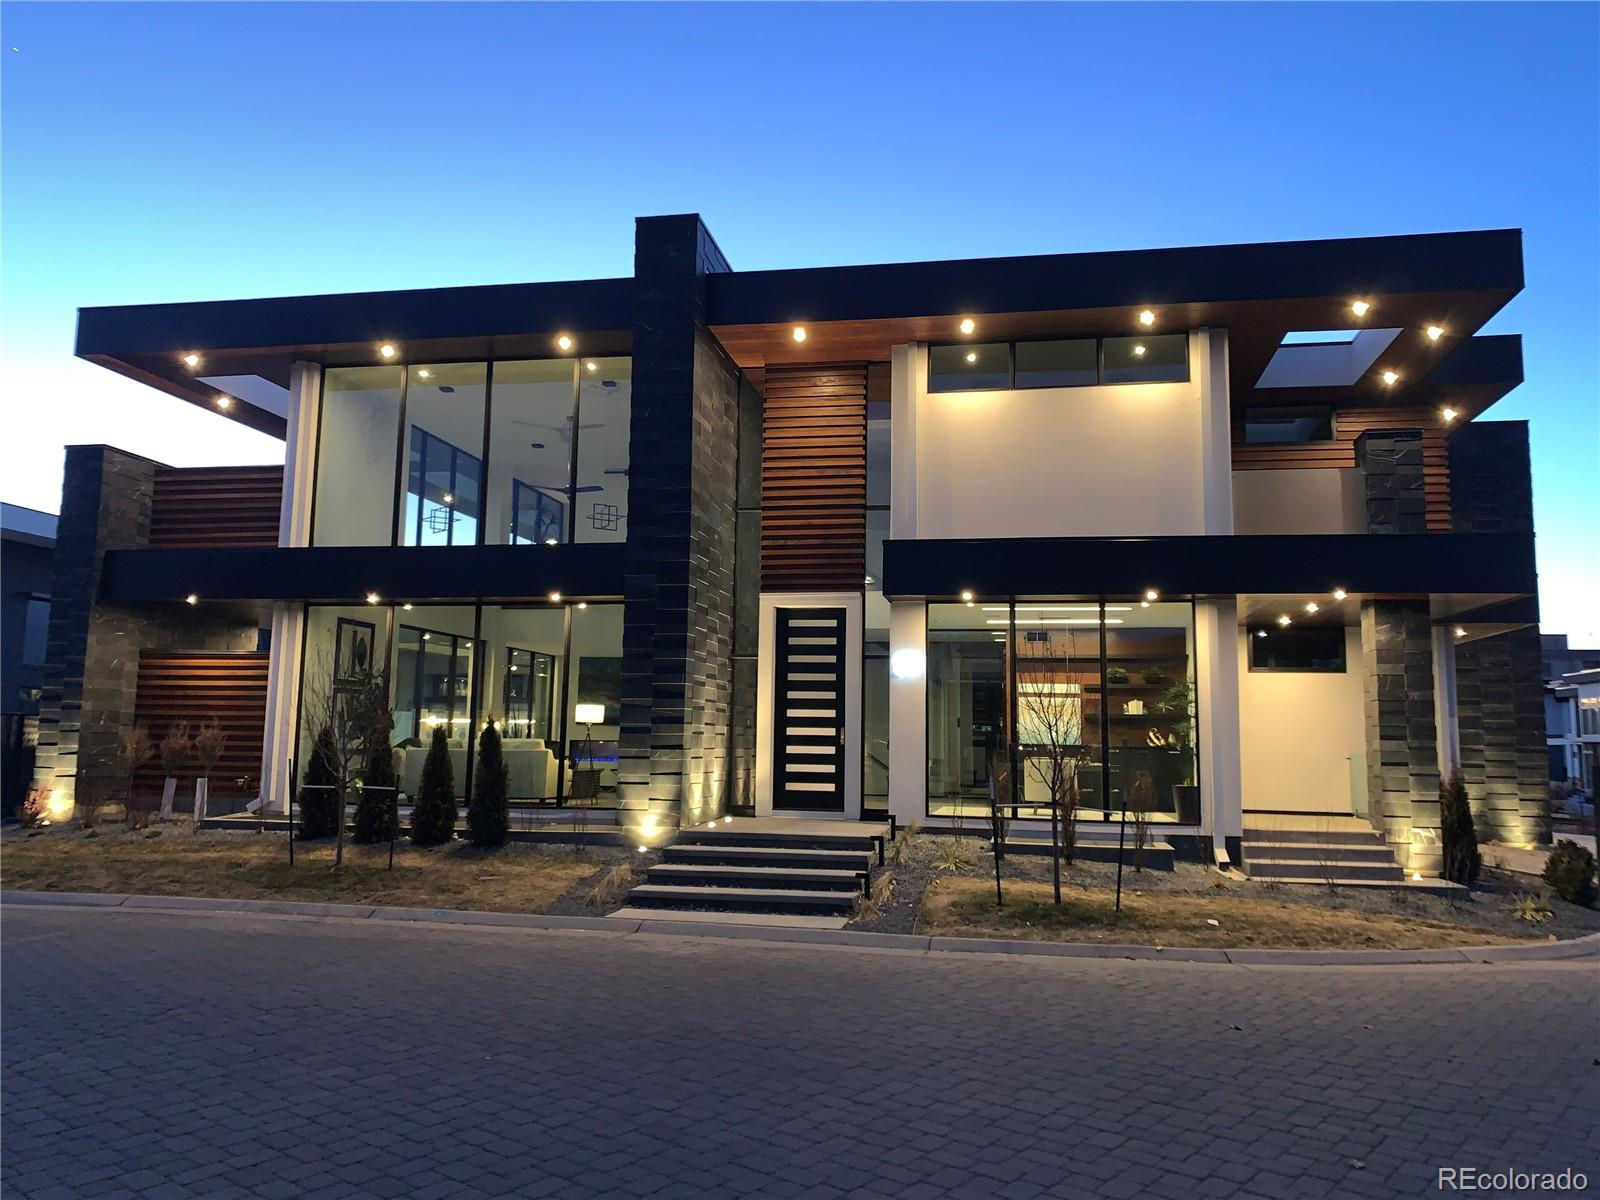 "Absolutely stunning ultra-modern with the highest grade of finish & inclusions that Cherry Creek & Polo Club has to offer, Seriously! A Home that is suitable for any magazine showcase with a private commercial elevator, heated driveway, radiant heated floors, heated lap pool, sauna, movie theater, chilled wine cellar, wet bar with 4-beer taps, floor to ceiling glass, etc... A master suite that is over 1,200 sqft that makes you feel like you are in the Four Seasons or St. Regis private oasis! Custom-built out master closets w/security safe! Smart home pre-wired with all the bells & whistles! A gourmet chef's kitchen that is unbeatable including 48"" range-top,  multiple prep sinks, double warming drawers, steam oven, coffee/espresso, multiple dishwashers & so on... Full-floor to ceiling pocketed glass walls opening indoors to outdoor covered patio & grill station! 4-car oversized finished garage equipped with built-in cabinets, Custom dog wash station & epoxy floor coating. Main floor study with custom built-ins. This home has so much & is truly a showstopper! Happy showing!"